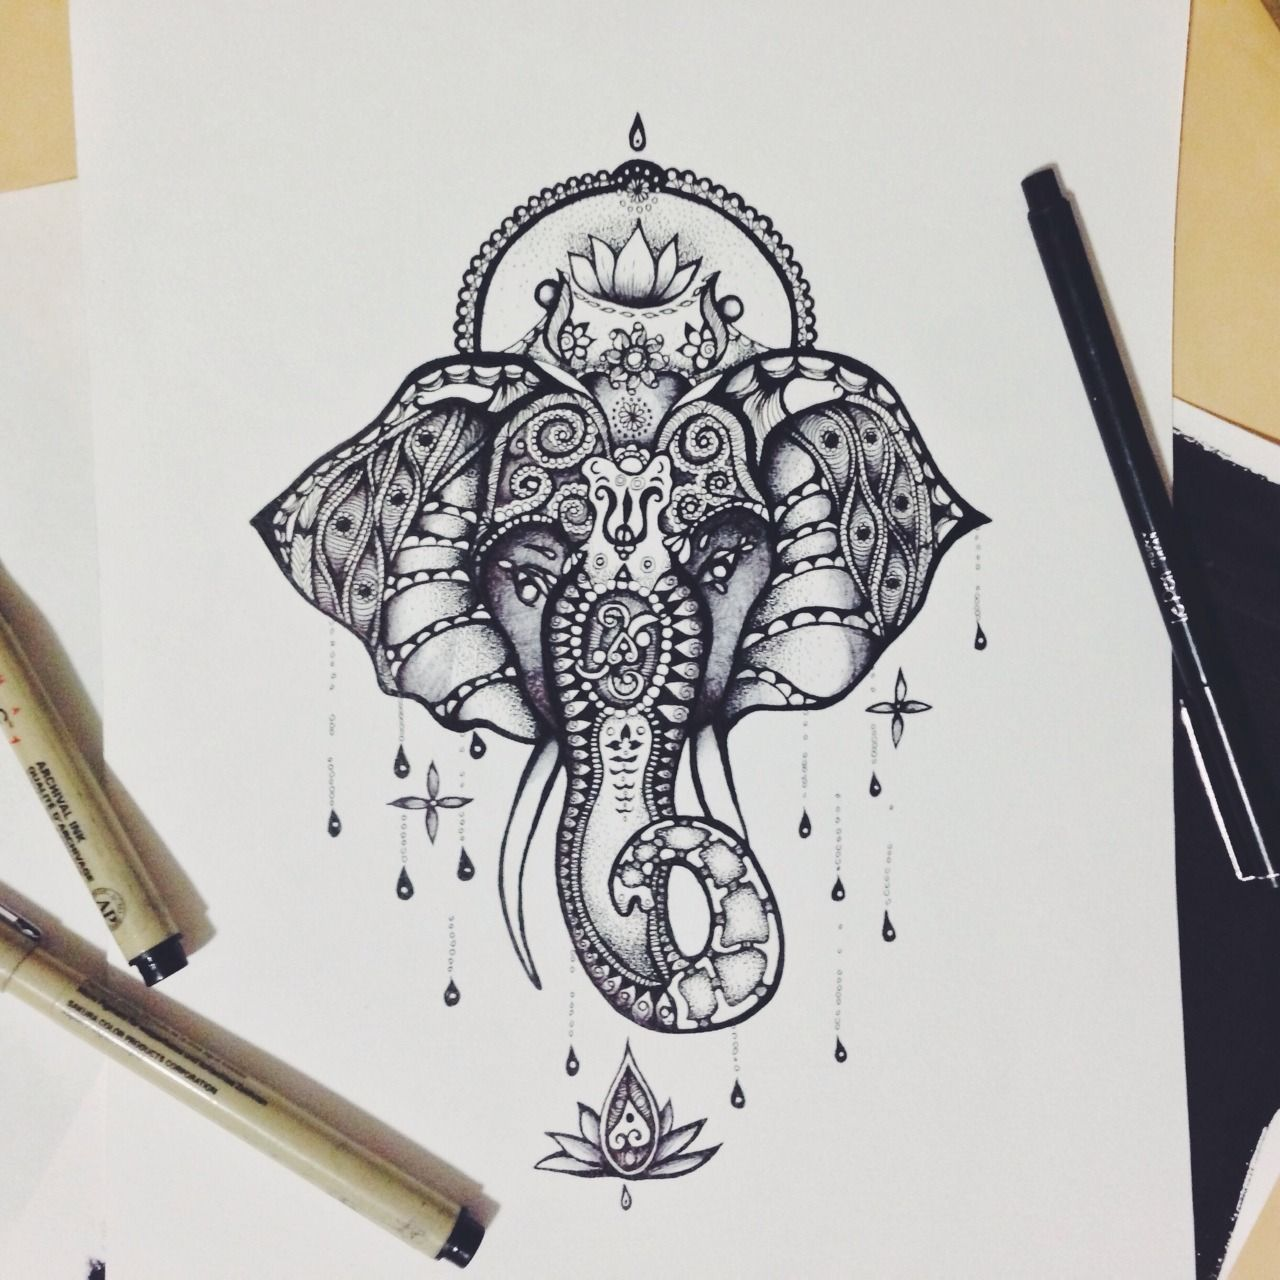 I love love the elephant and lotus flower combo just not sure how wauw this is my next tatoo drawing illustration art jewelry beautiful patterns elephant animal tattoo flower ink africa pen ornate lotus detail mandala izmirmasajfo